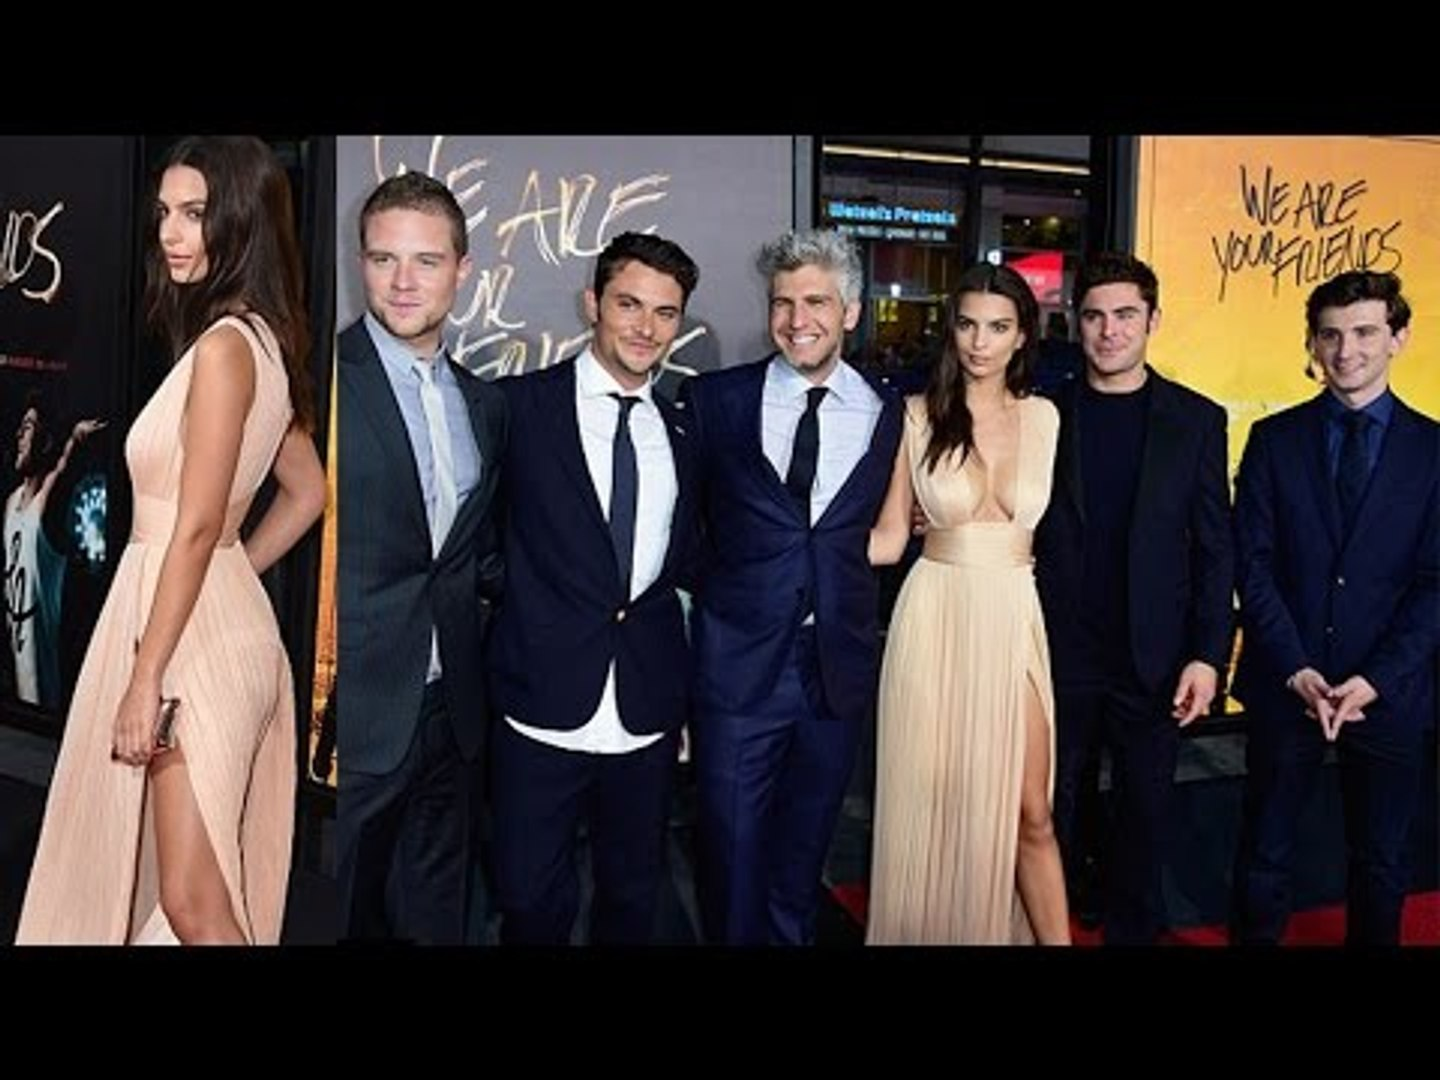 Emily Ratajkowski Shows Ample CLEAVAGE At 'We Are Your Friends' Premiere